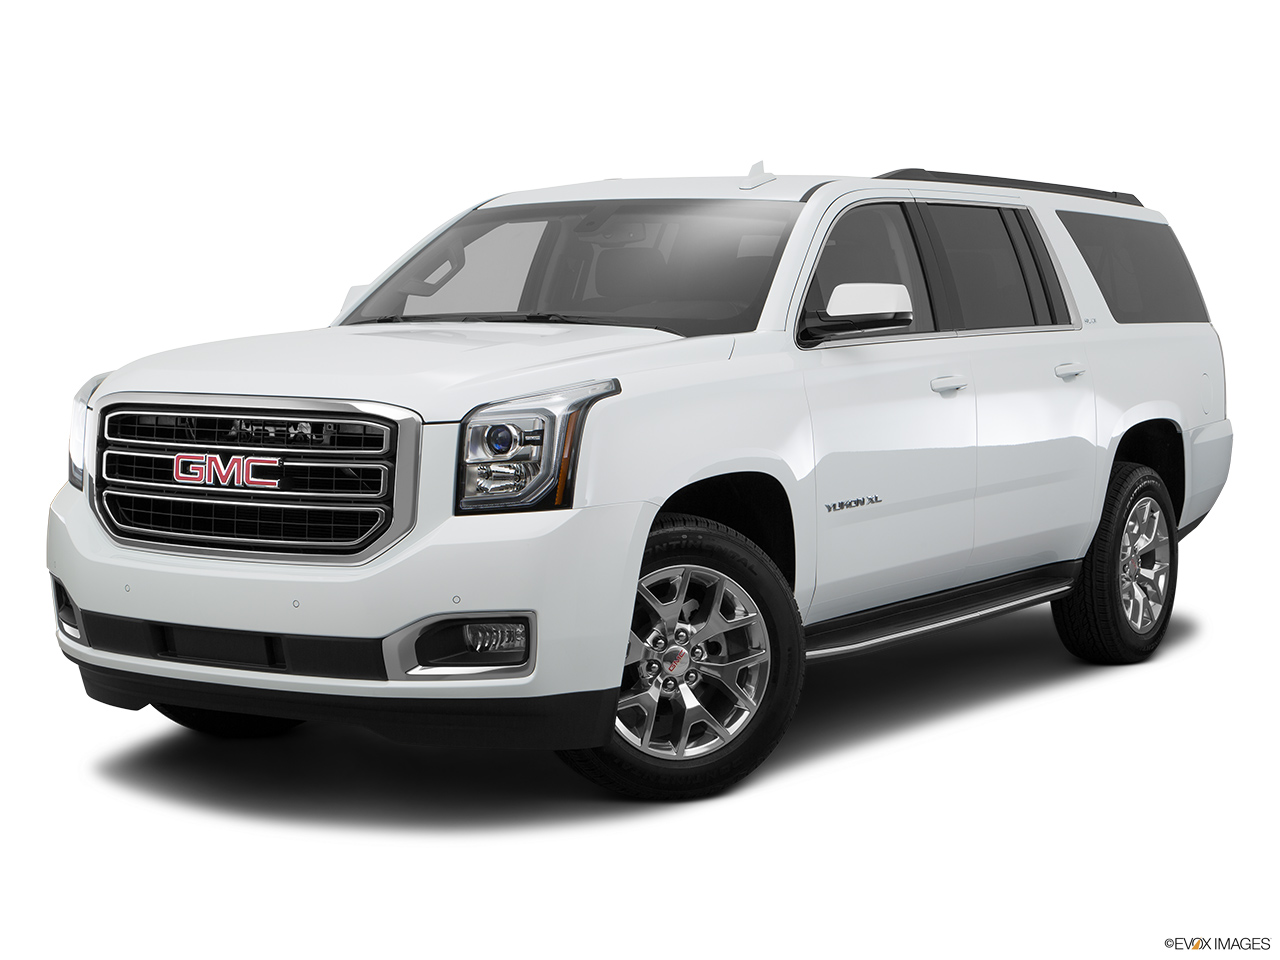 gmc yukon xl 2017 5 3l sle 2wd in saudi arabia new car prices specs reviews photos yallamotor. Black Bedroom Furniture Sets. Home Design Ideas